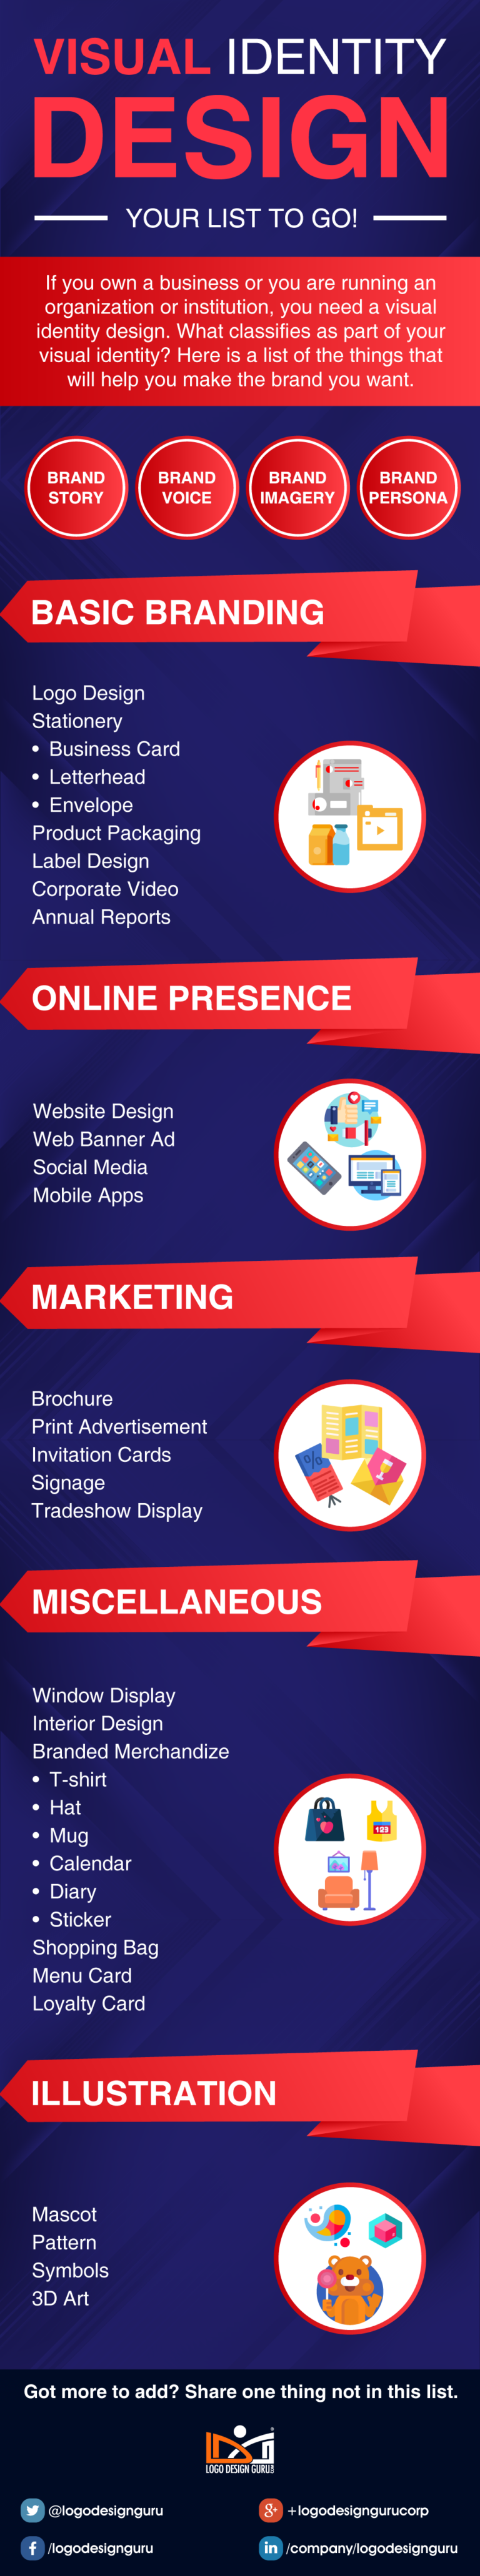 """Branding Objectives: The """"Why"""" of Visual Identity Design #infographic"""